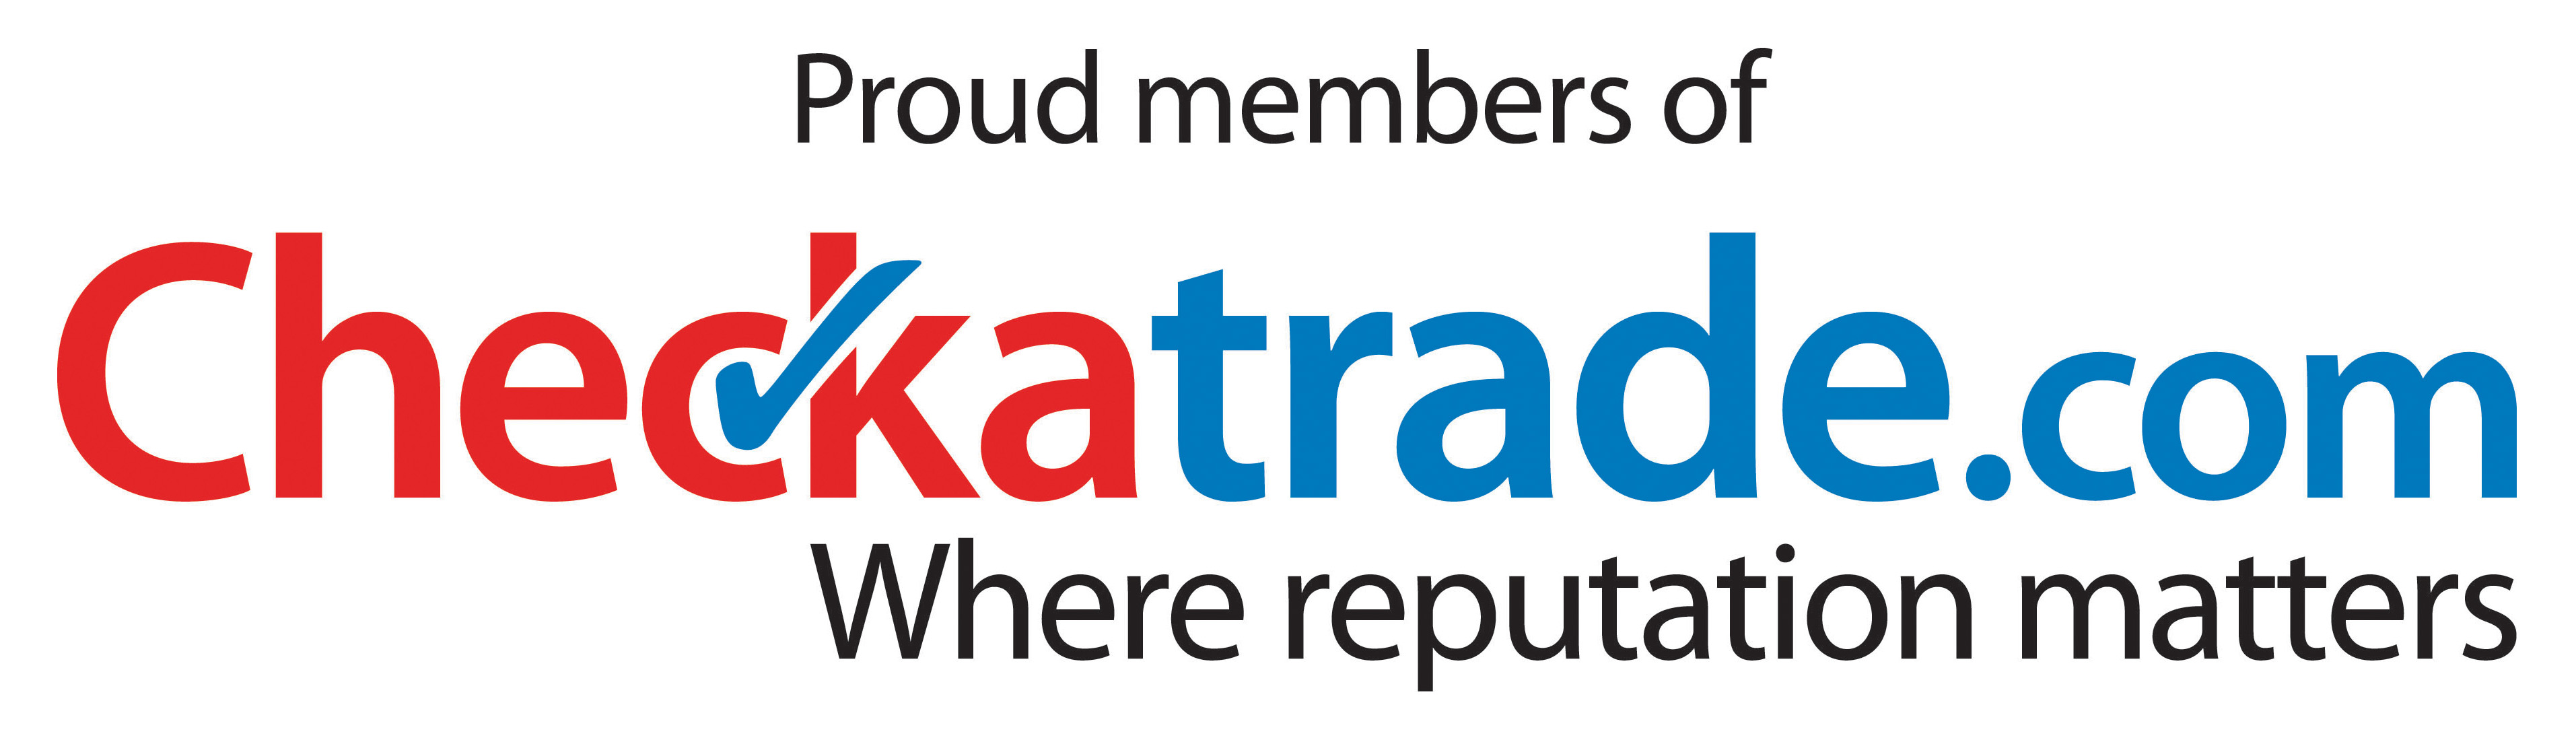 Proud member of Checkatrade.com